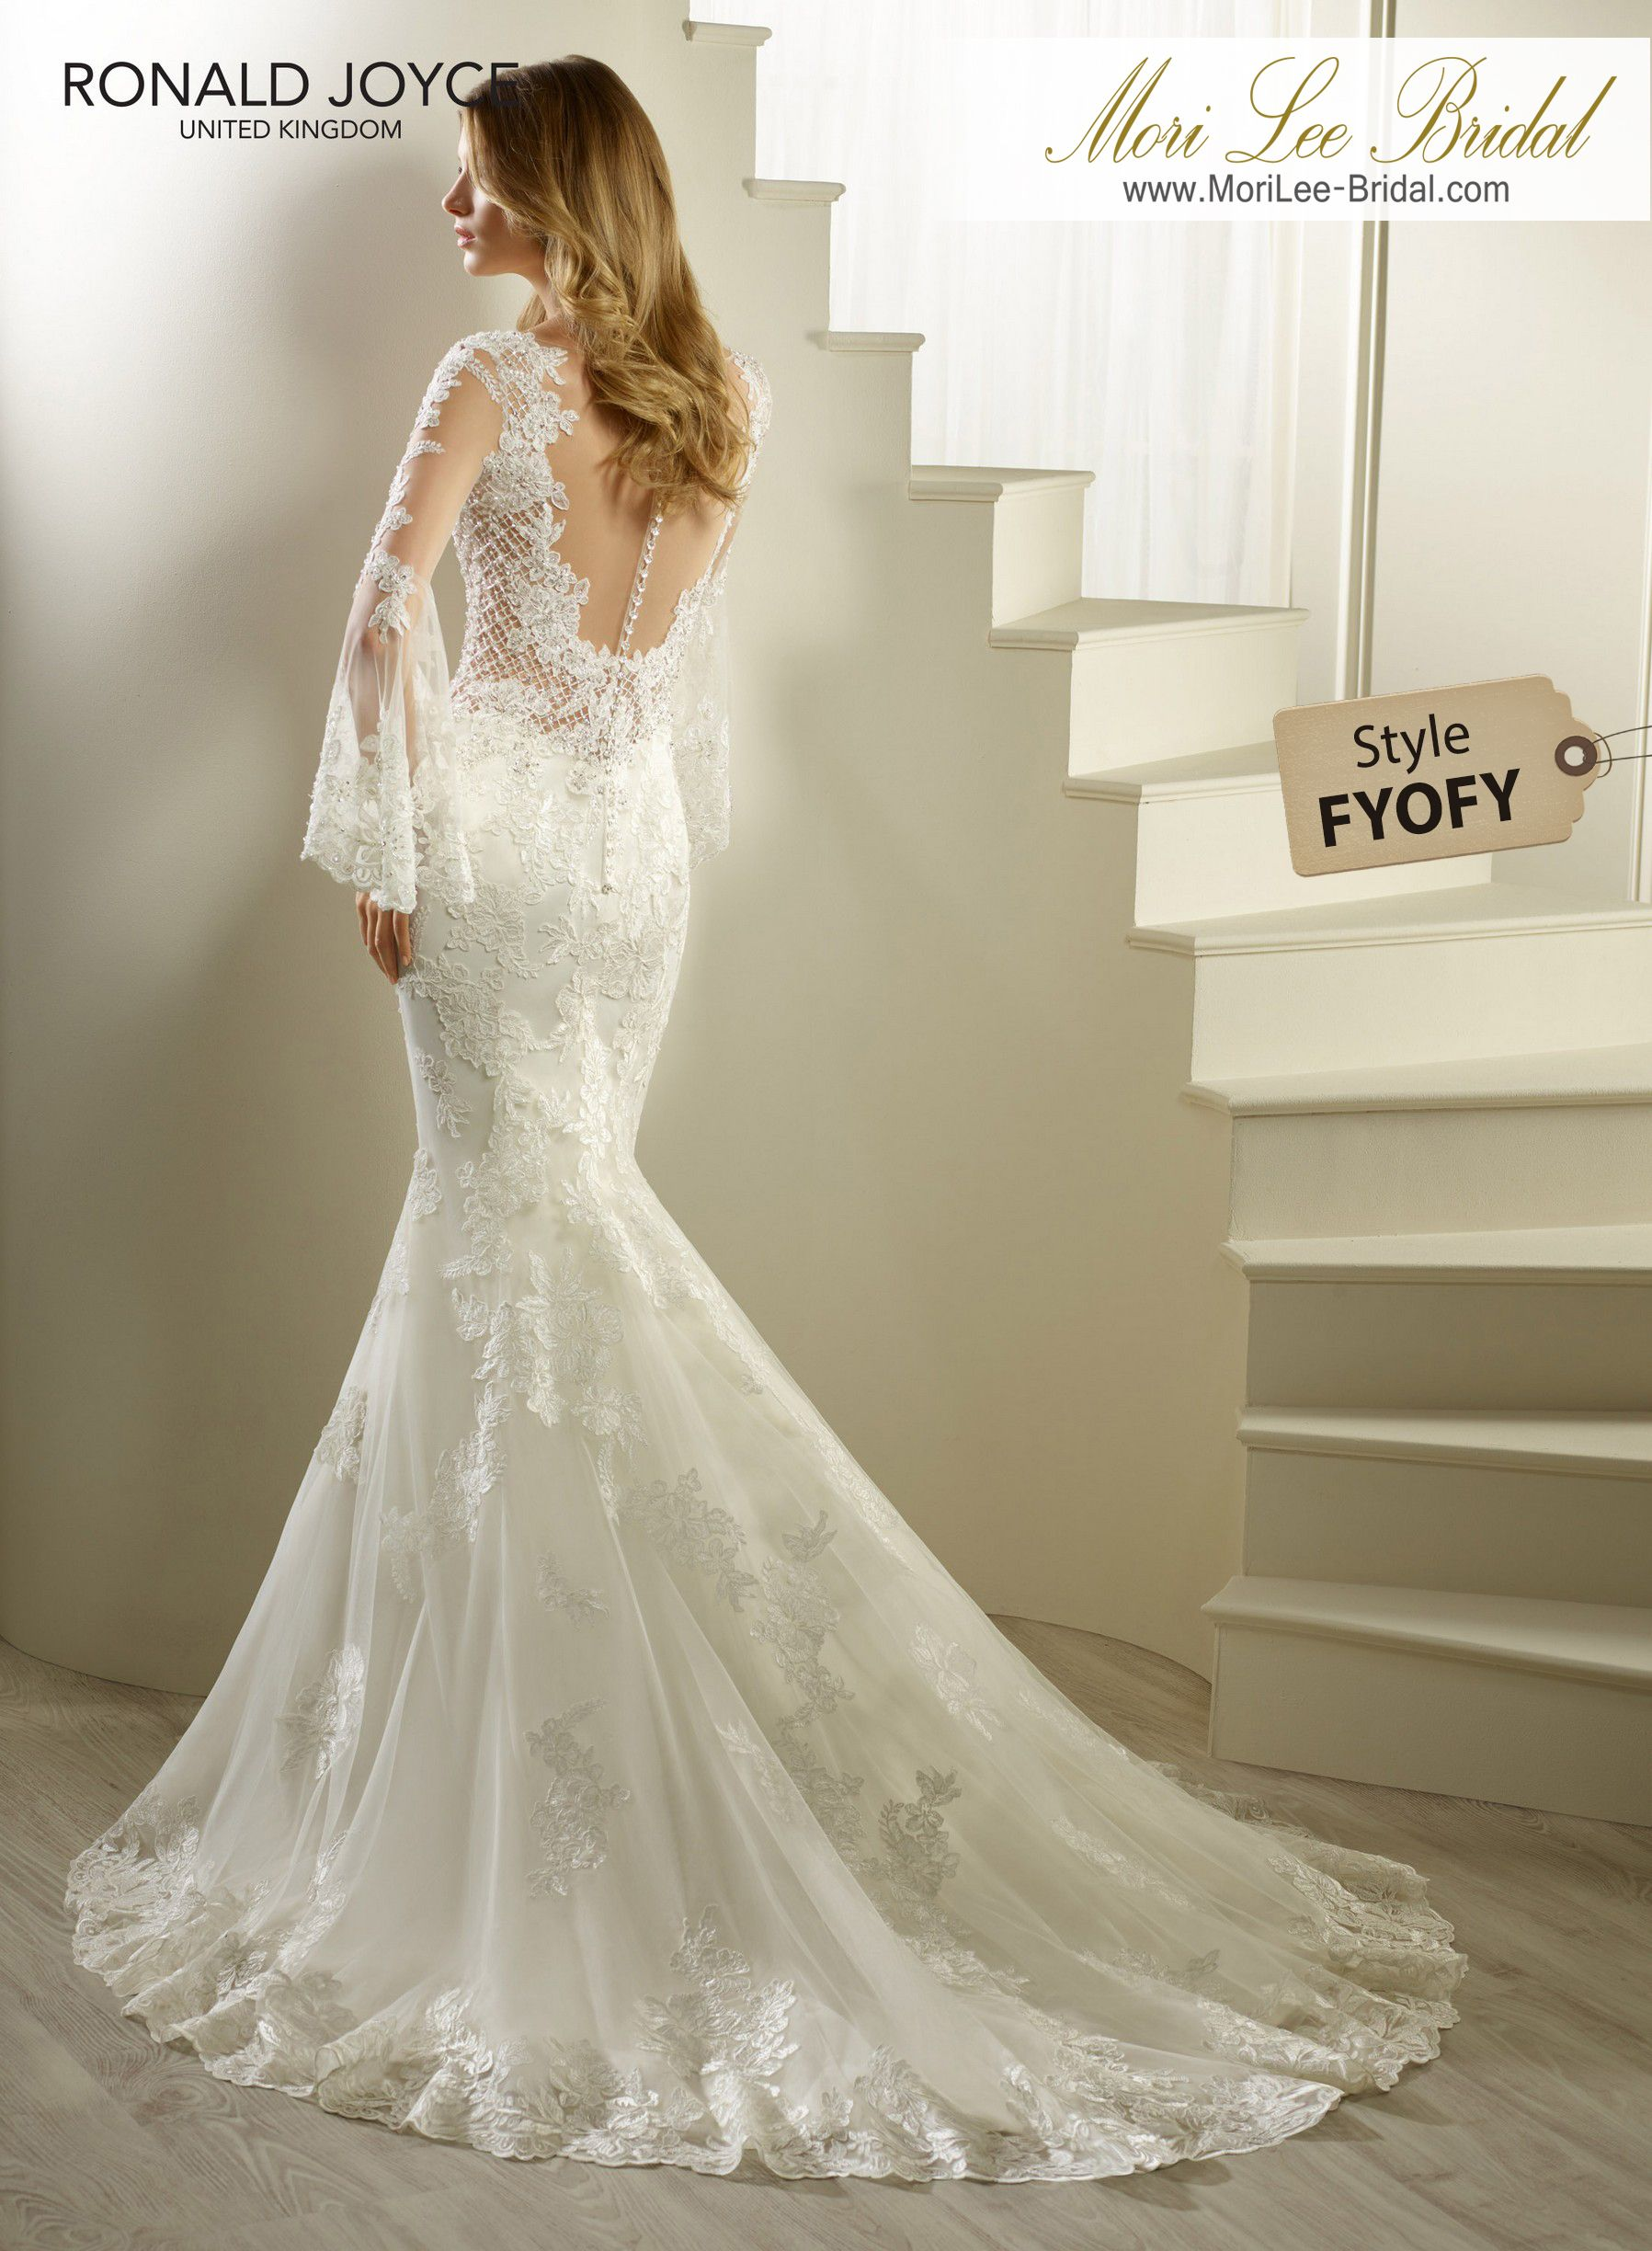 Style FYOFY HUDSON A SATIN AND ORGANZA FISHTAIL DRESS WITH LACE ...